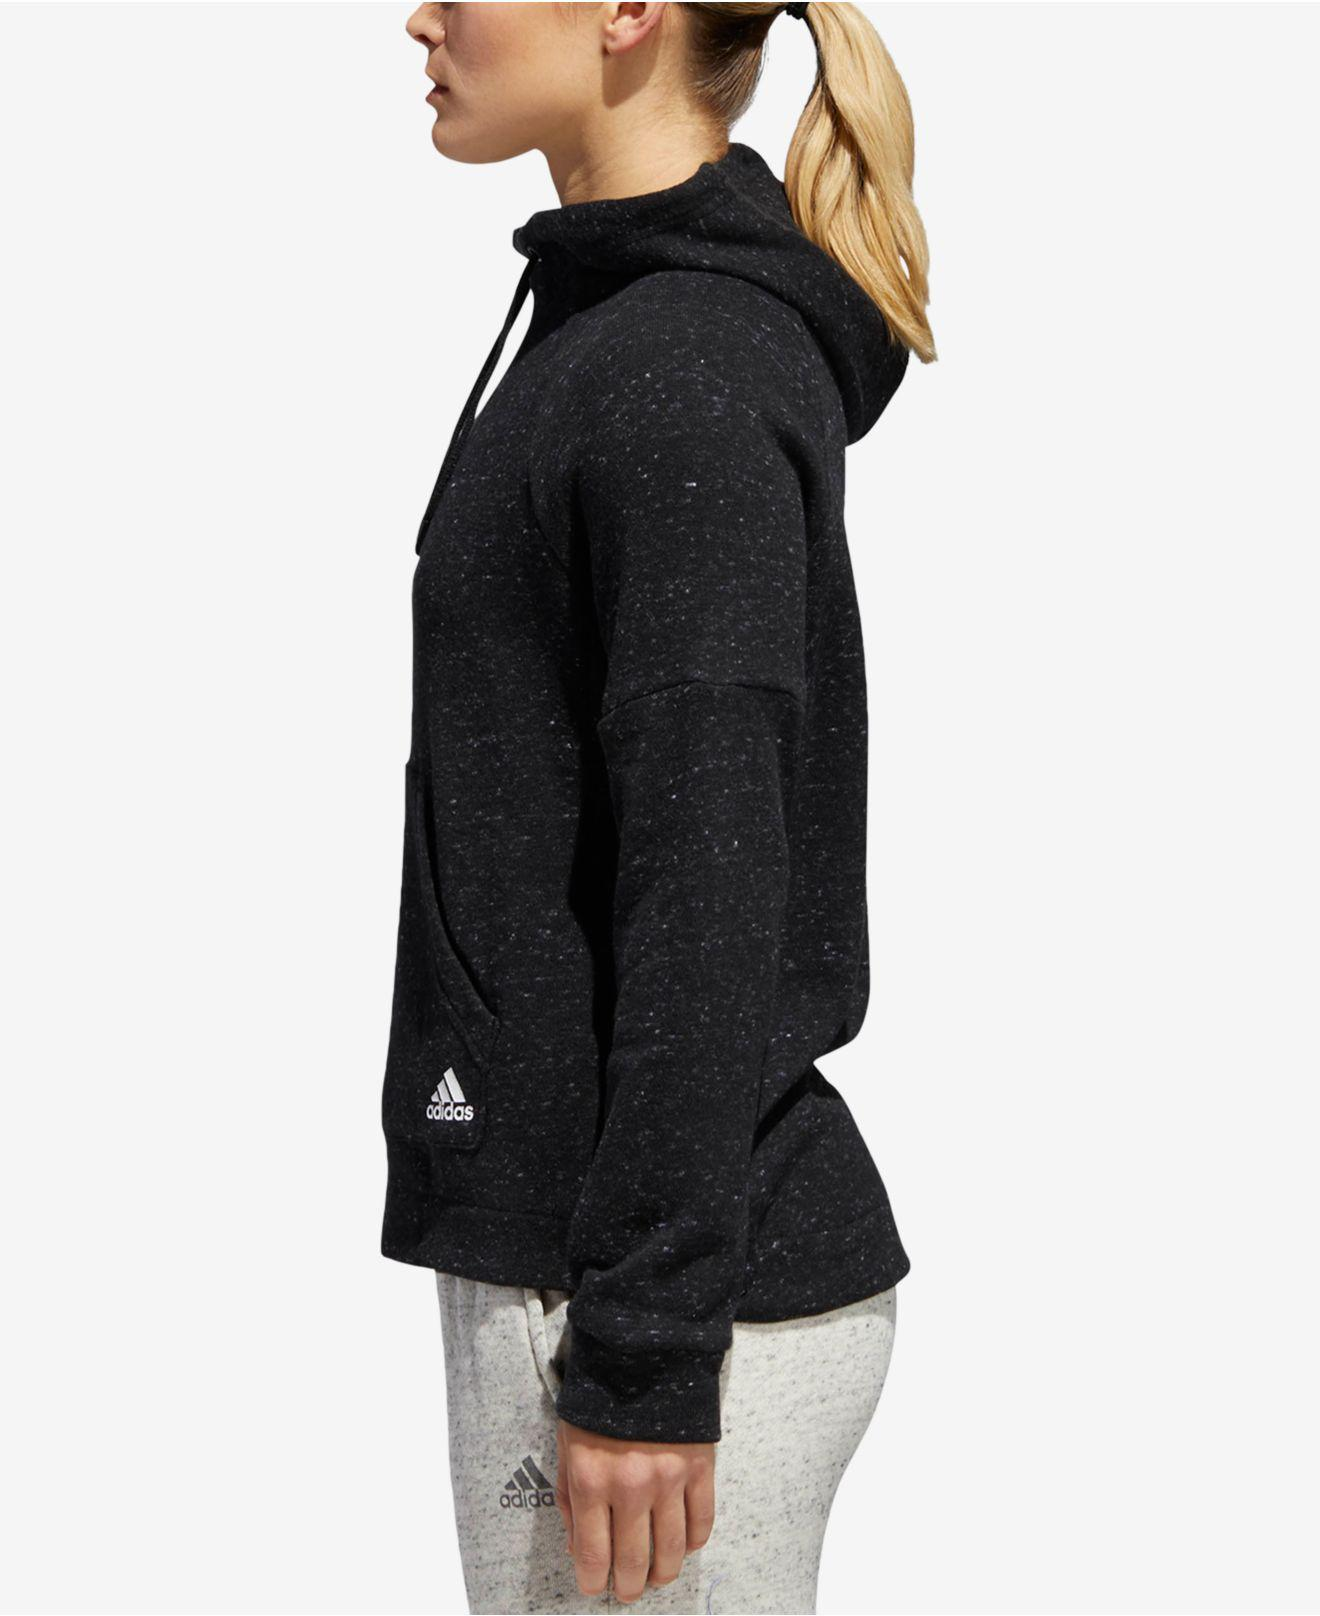 aa67d330a Adidas - Black Sport2street Cotton French Terry Hoodie - Lyst. View  fullscreen